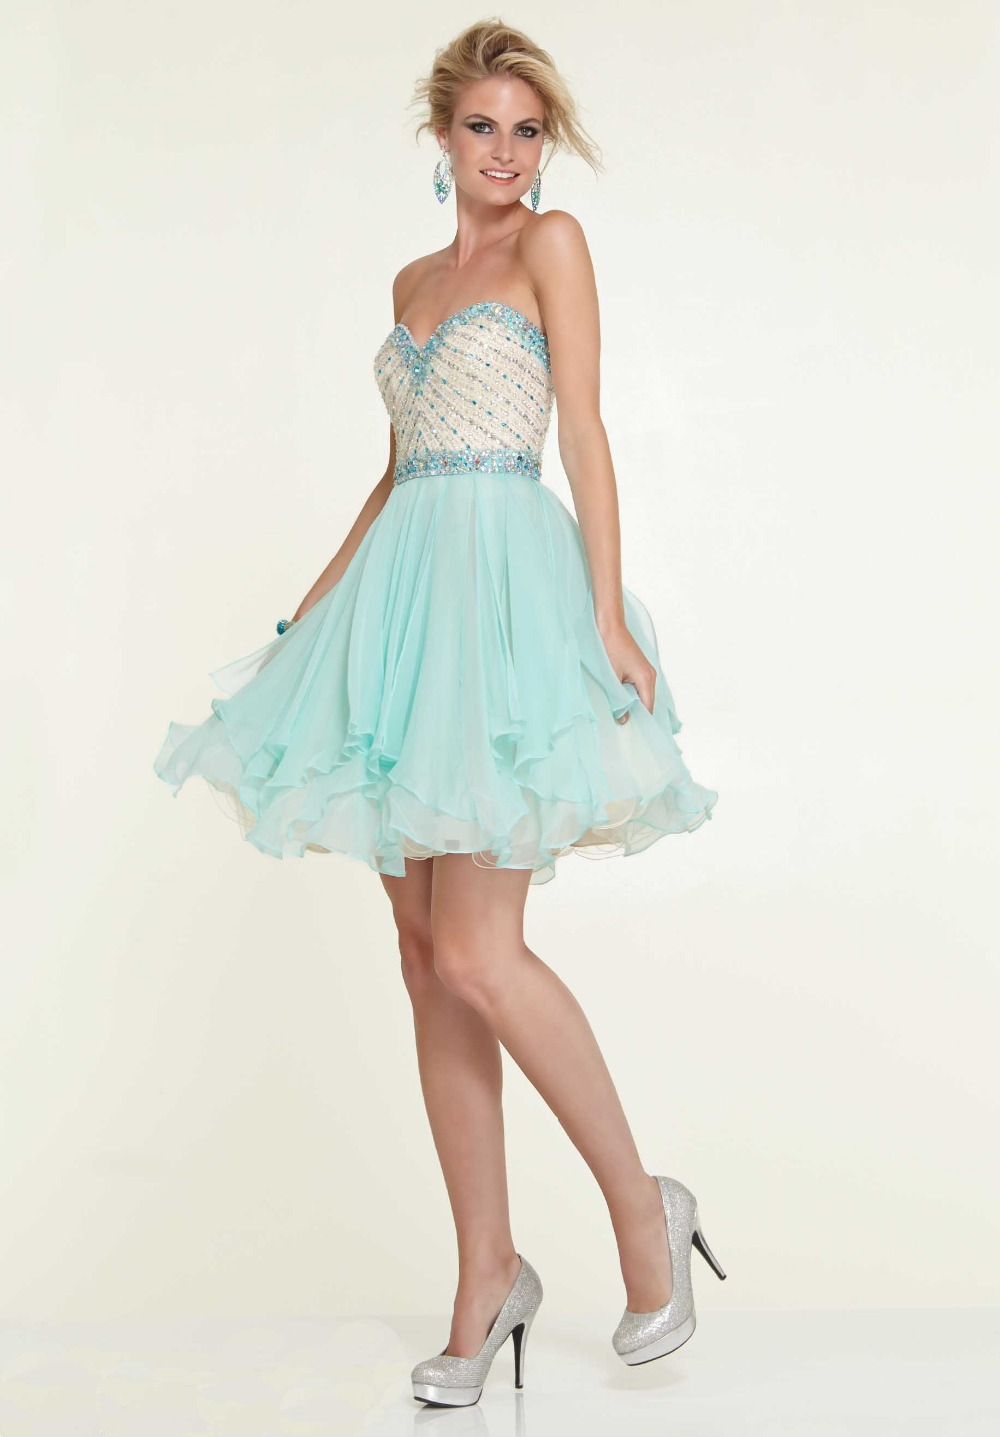 Compare Prices on Short Light Blue Homecoming Dresses- Online ...